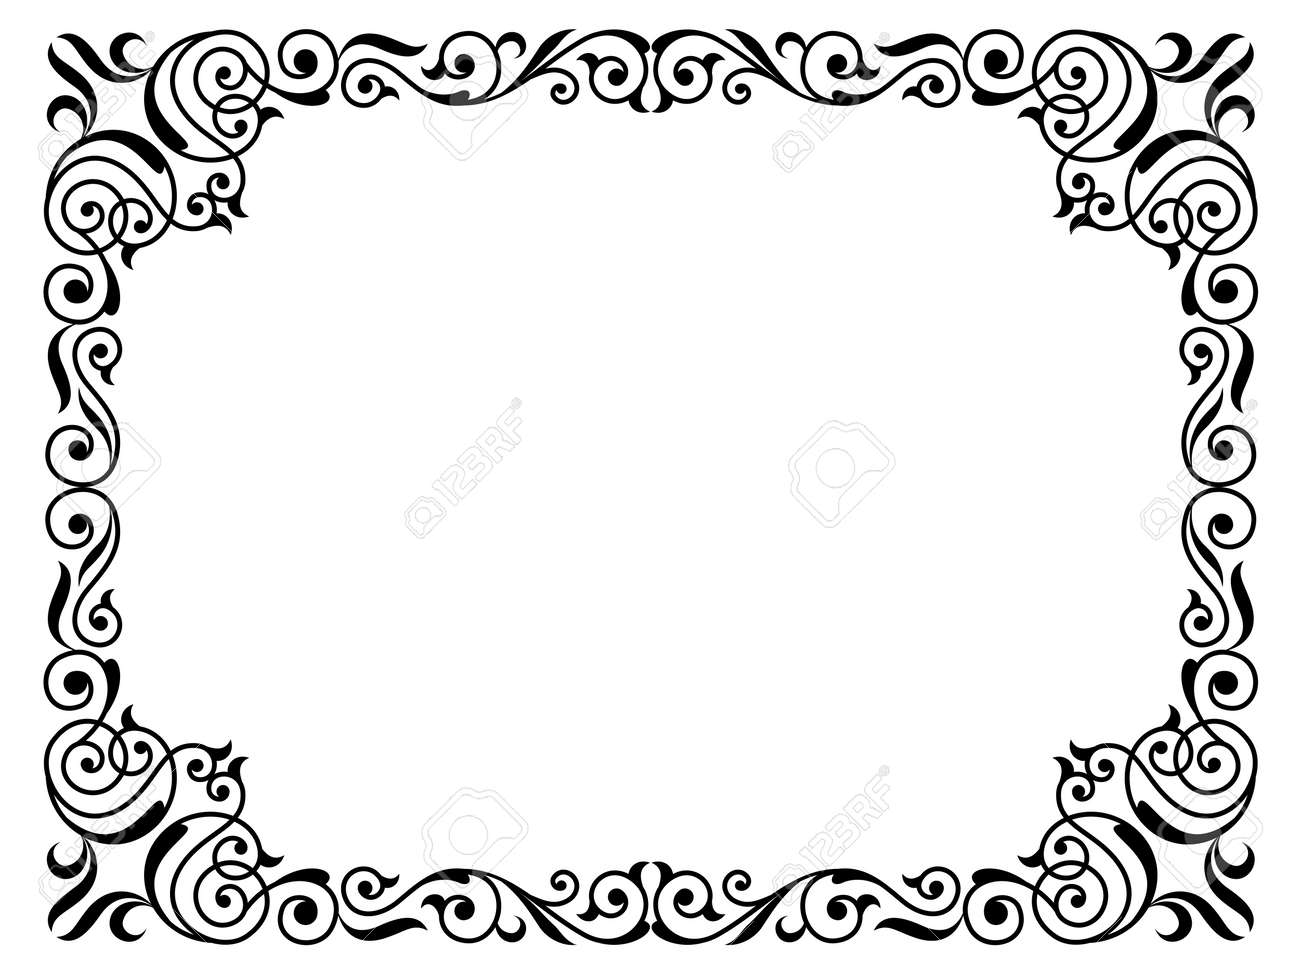 Calligraphy Penmanship Curly Baroque Frame Black Isolated Royalty ...